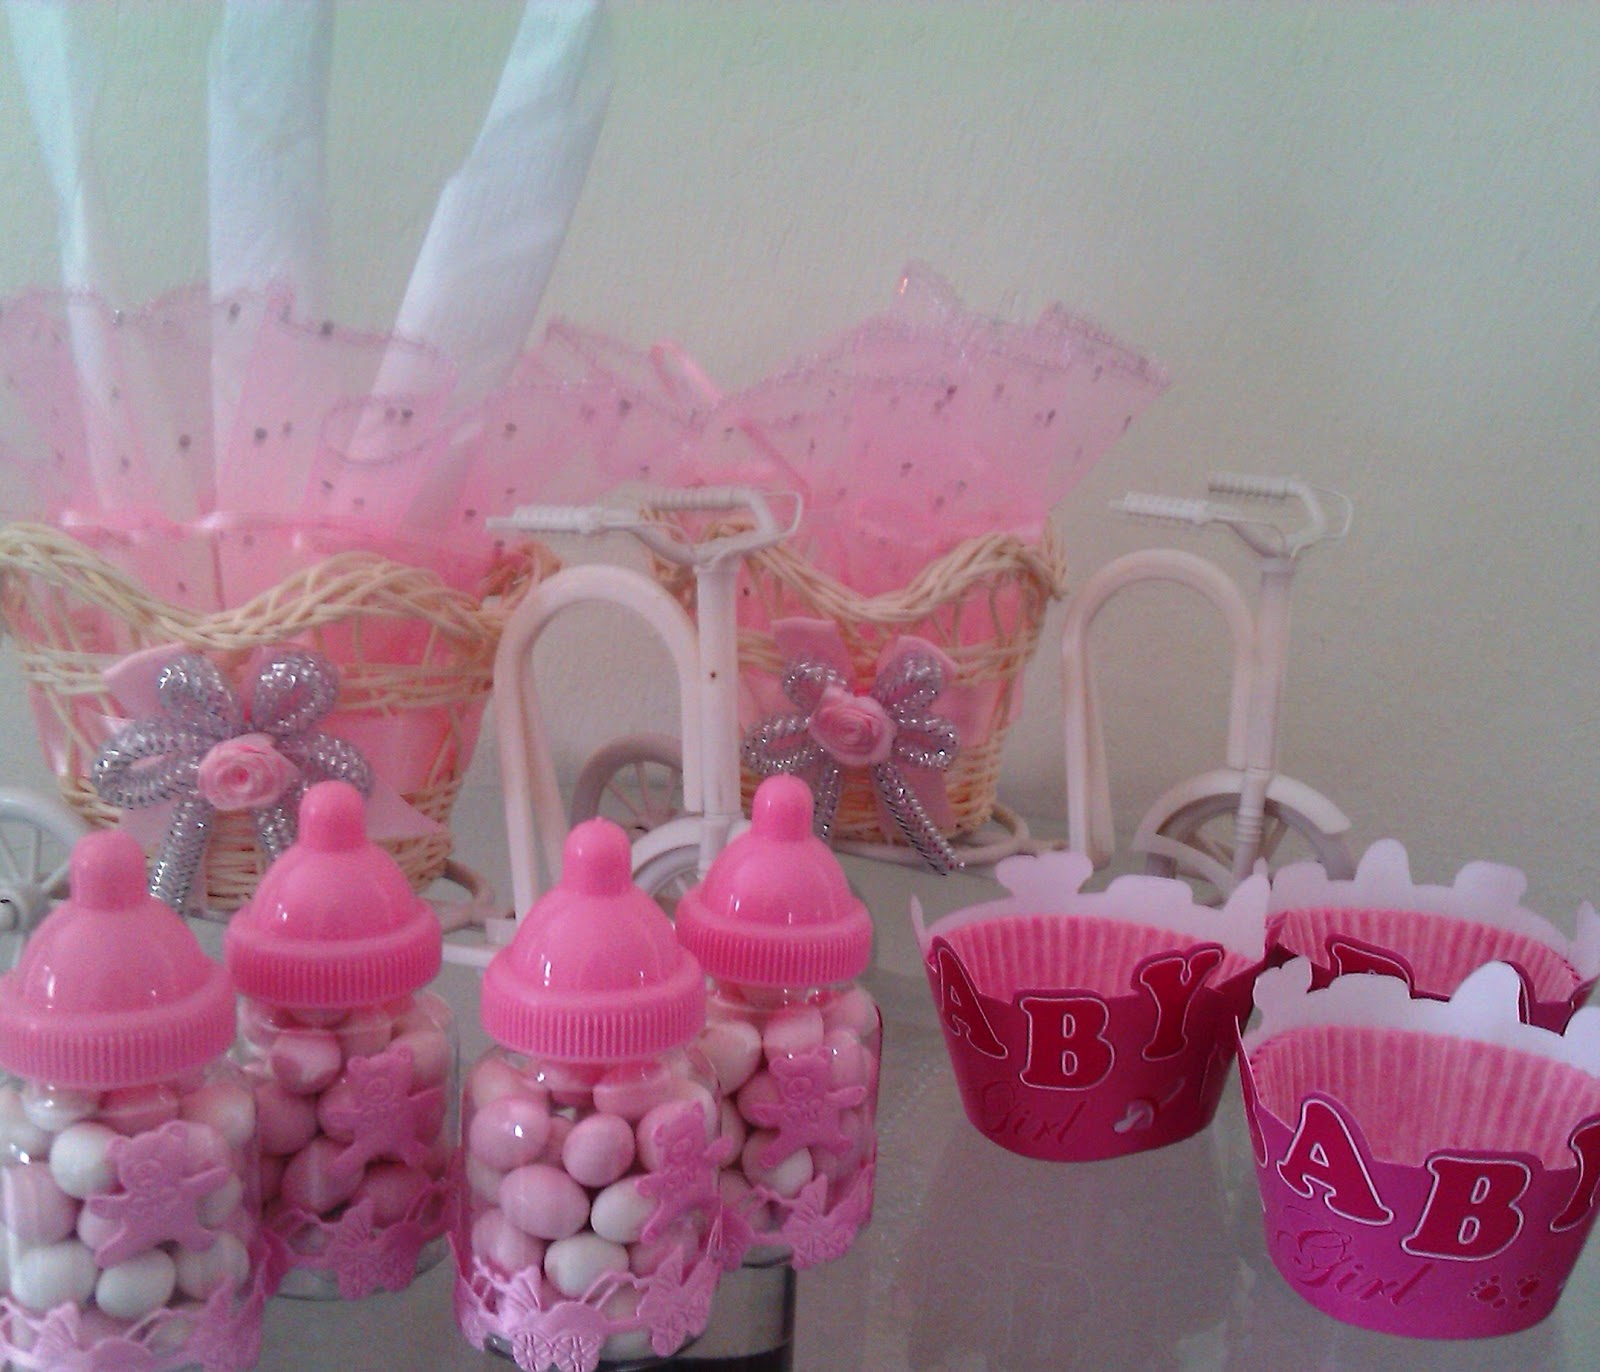 Full Size of Baby Shower:enamour Baby Shower Gifts For Guests Picture Ideas 43 Baby Shower Guest Gifts Ideas Baby Shower Gifts For Guest About 43 Baby Shower Guest Gifts Ideas Baby Shower Gifts For Guest About To Pop Baby Shower Kadokanet